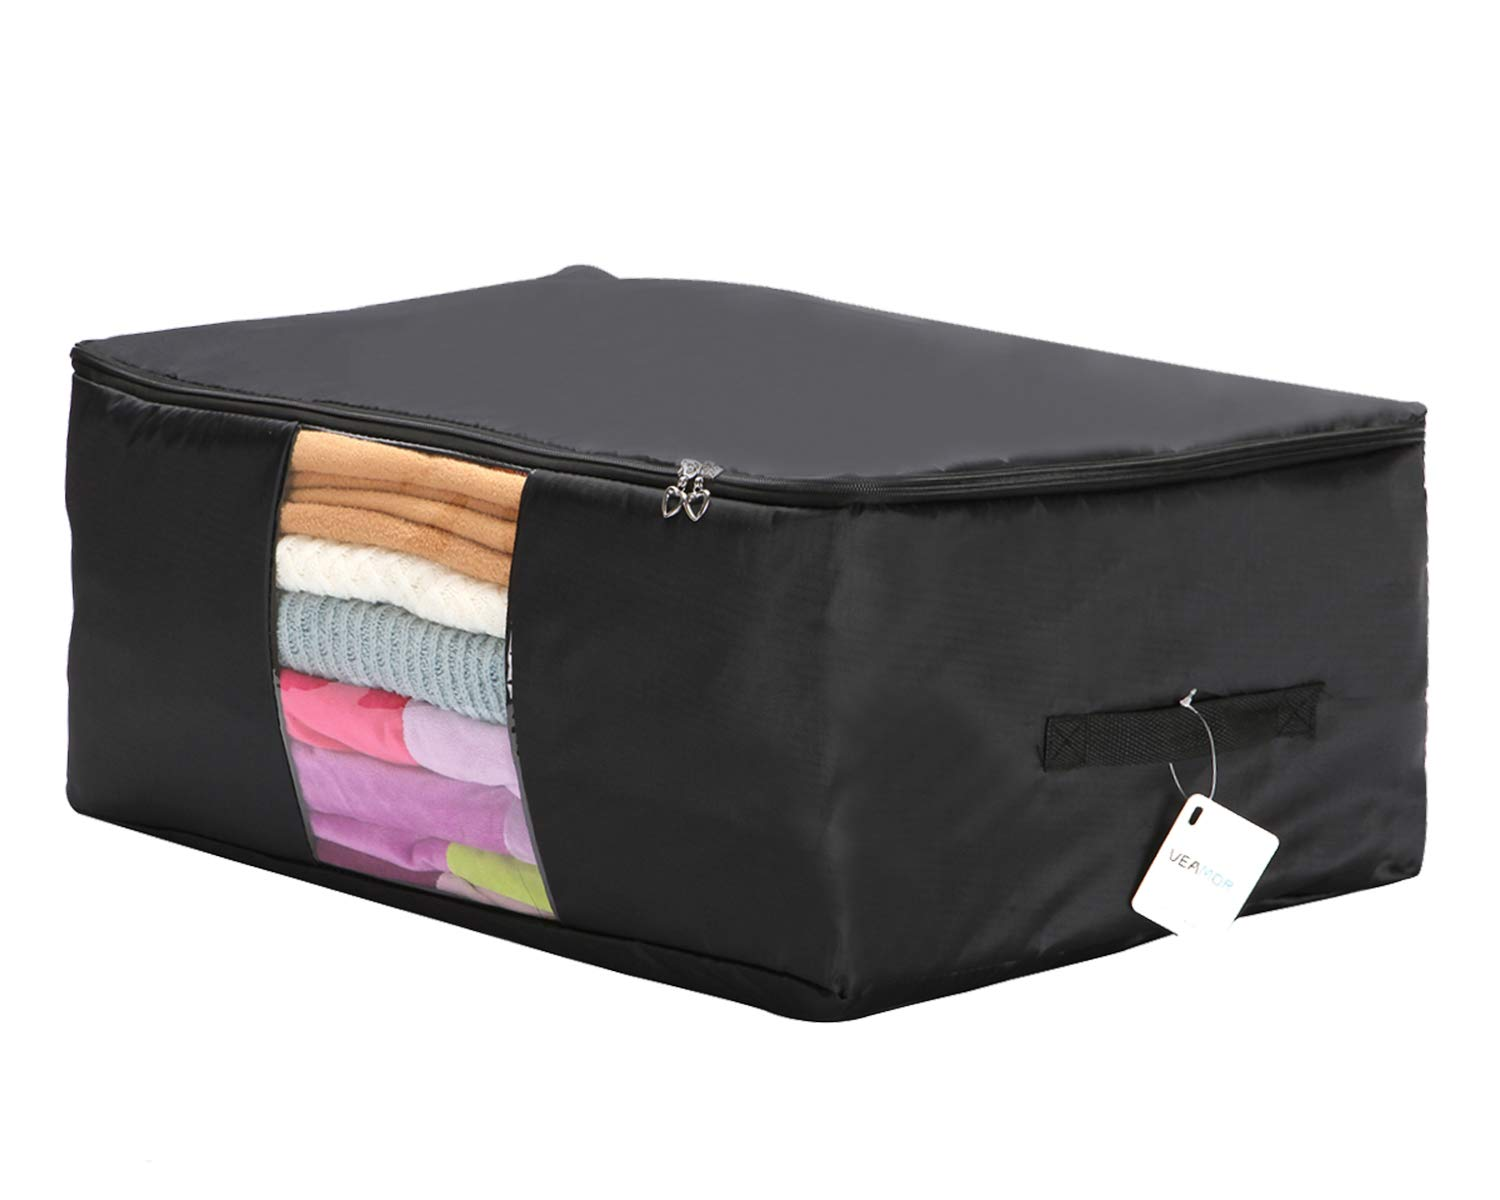 VEAMOR Comforter Storage Bags Containers,Pillow Beddings/Blanket Clothes Organizer Storage Containers with Zippers,Breathable and Moistureproof (Black, XXL)